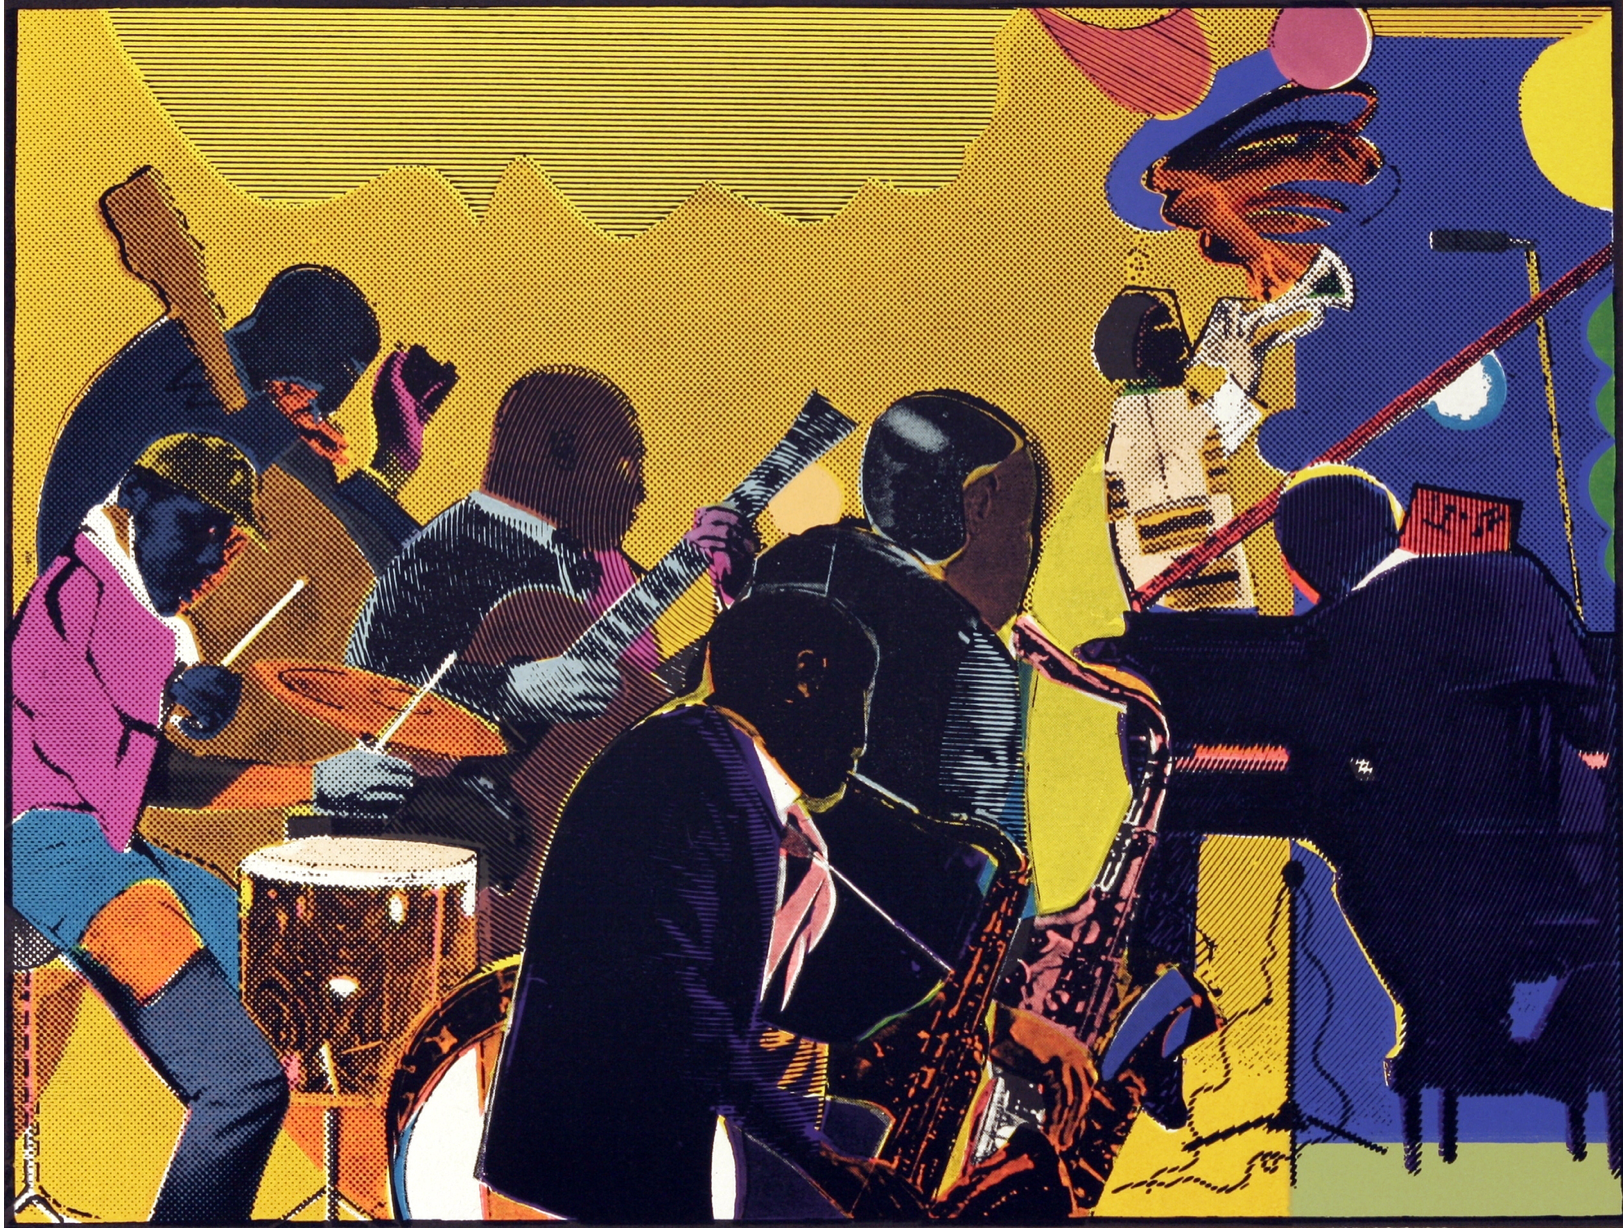 Romare Bearden,  Out Chorus,  1979-80, etching and aquatint (Image courtesy of the Romare Bearden Estate)